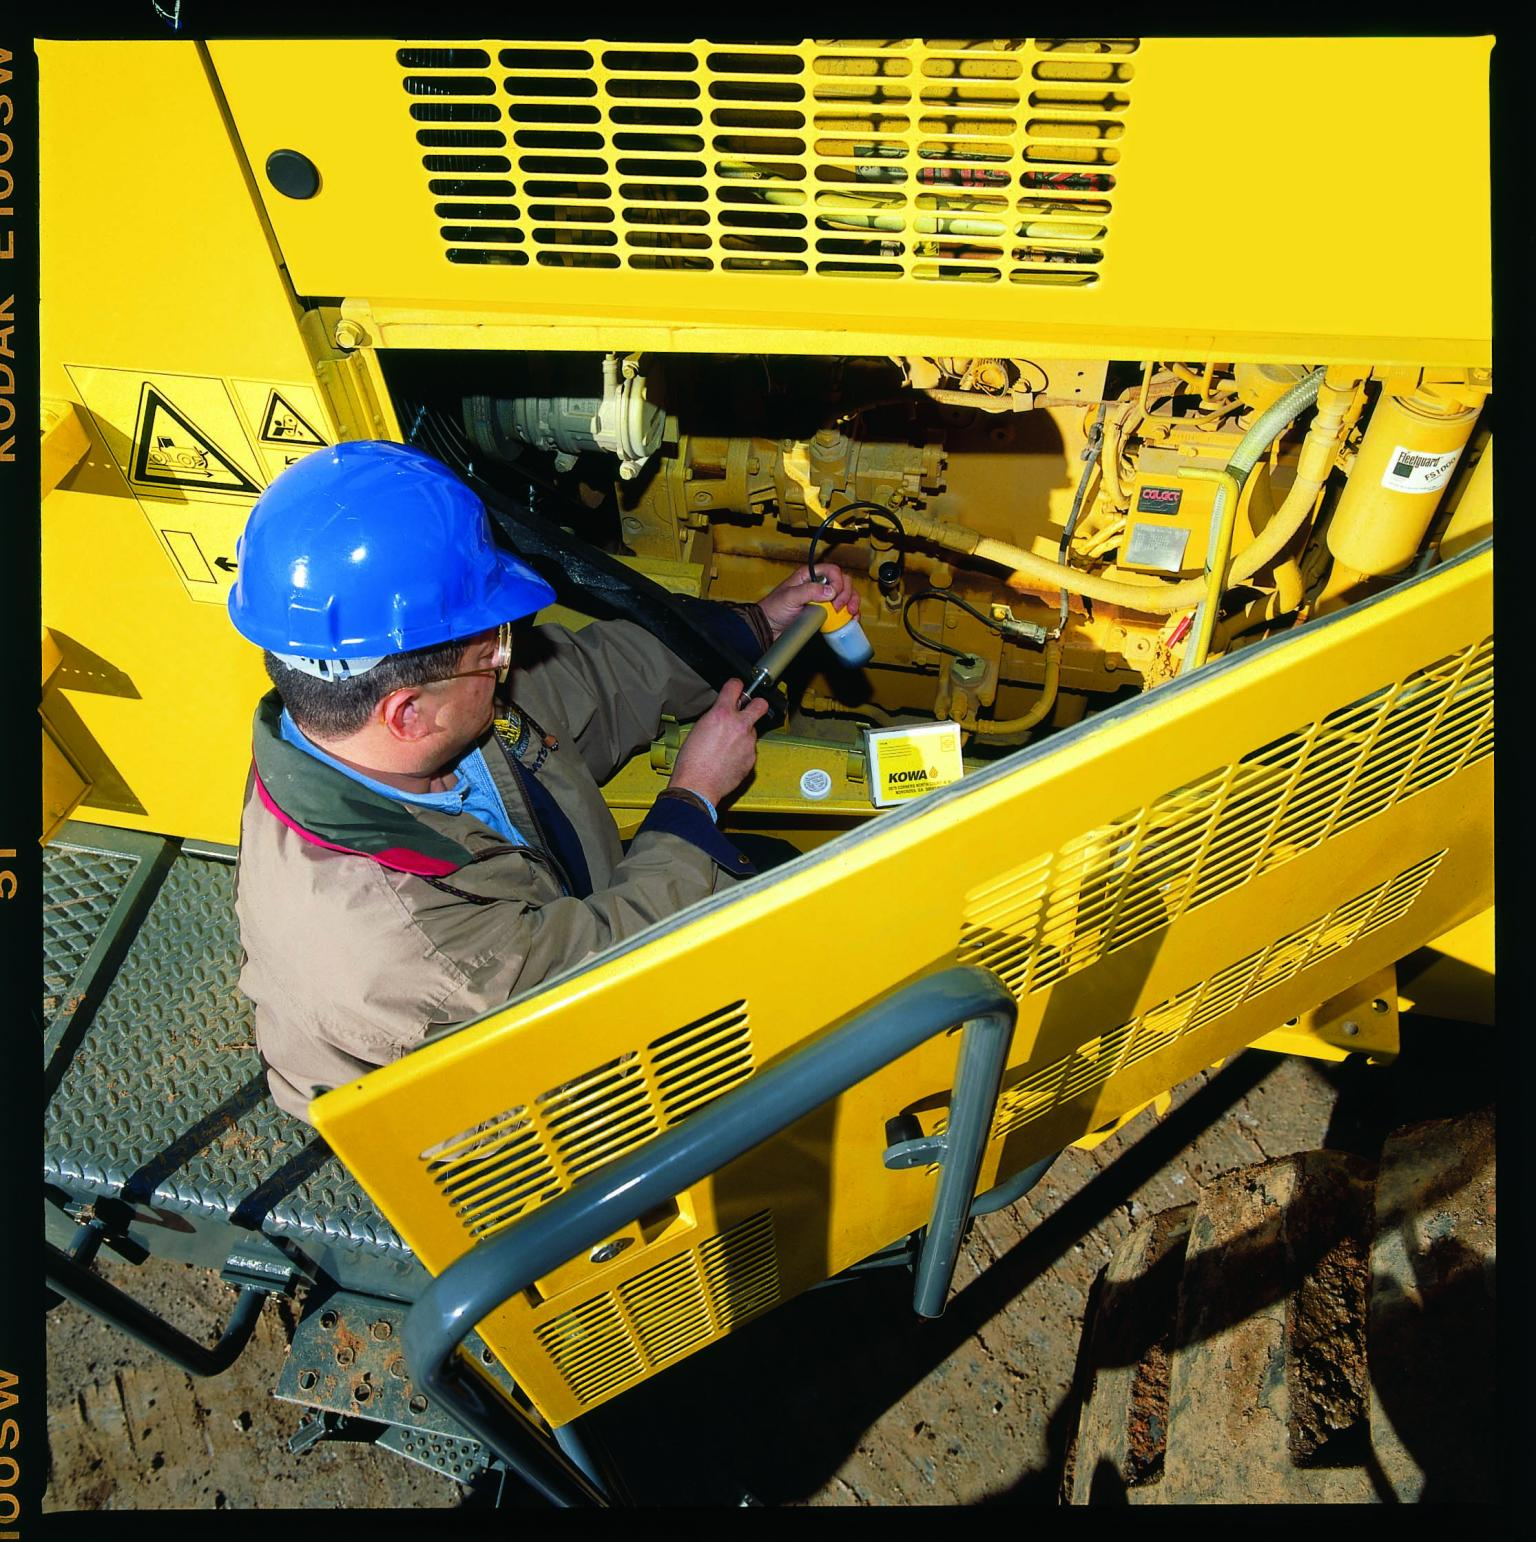 A serviceman of the Power Motive Corporation in Colorado, US, sampling oil under the Komatsu Oil and Wear Analysis (KOWA) procedure for condition monitoring. Note the easily accessible service point